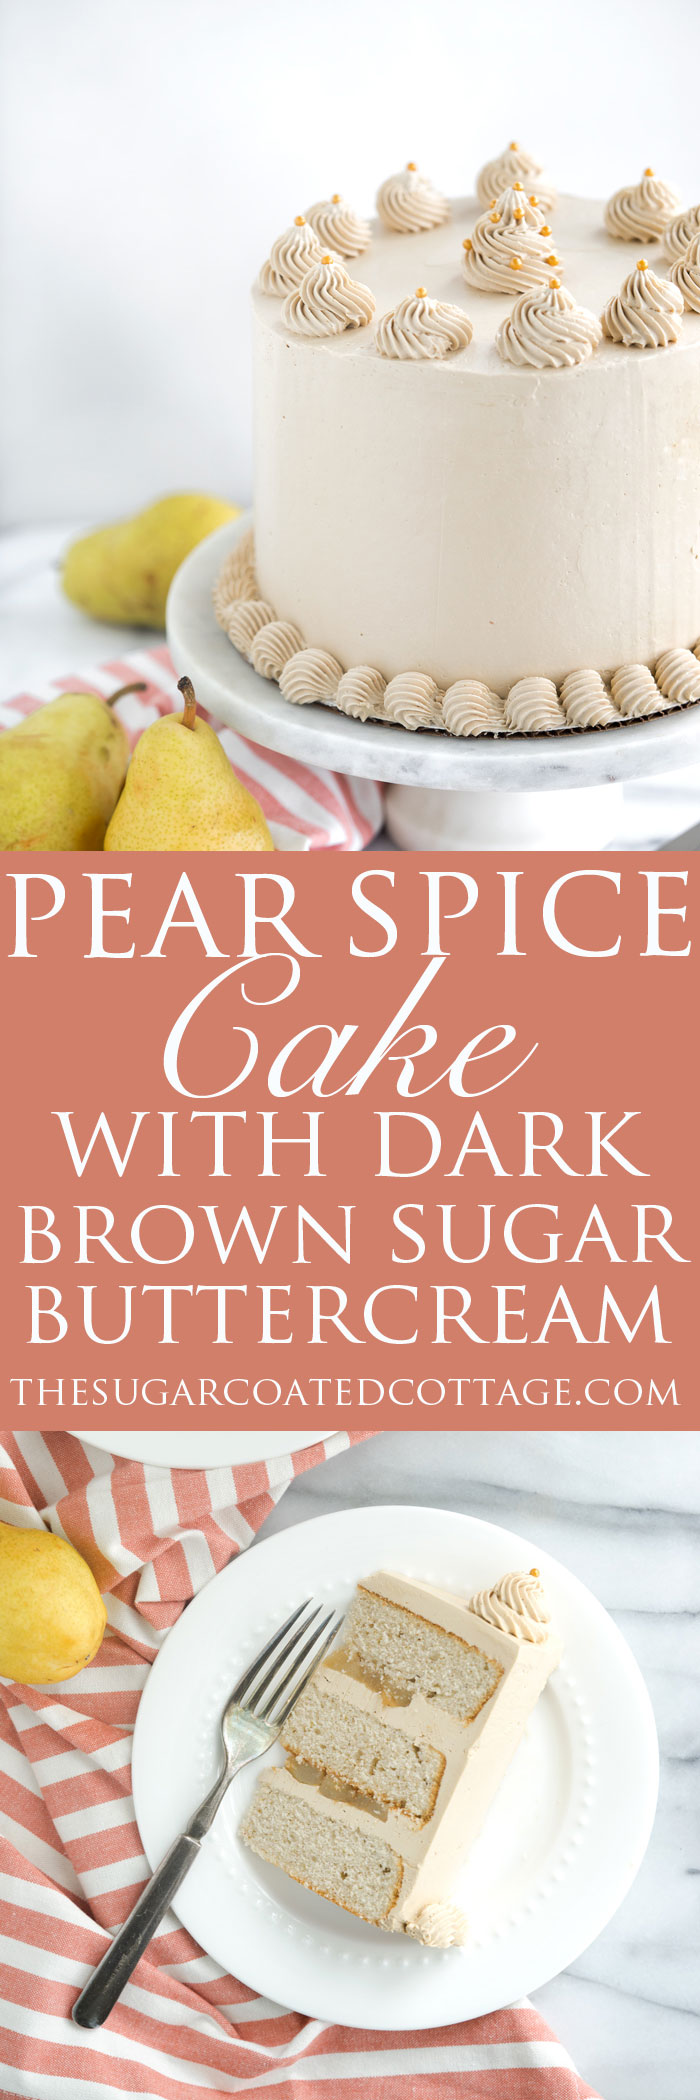 Pear Spice Cake with Dark Brown Sugar Buttercream. Layers of spice cake, caramelized pears and dark brown sugar buttercream. | thesugarcoatedcottage.com